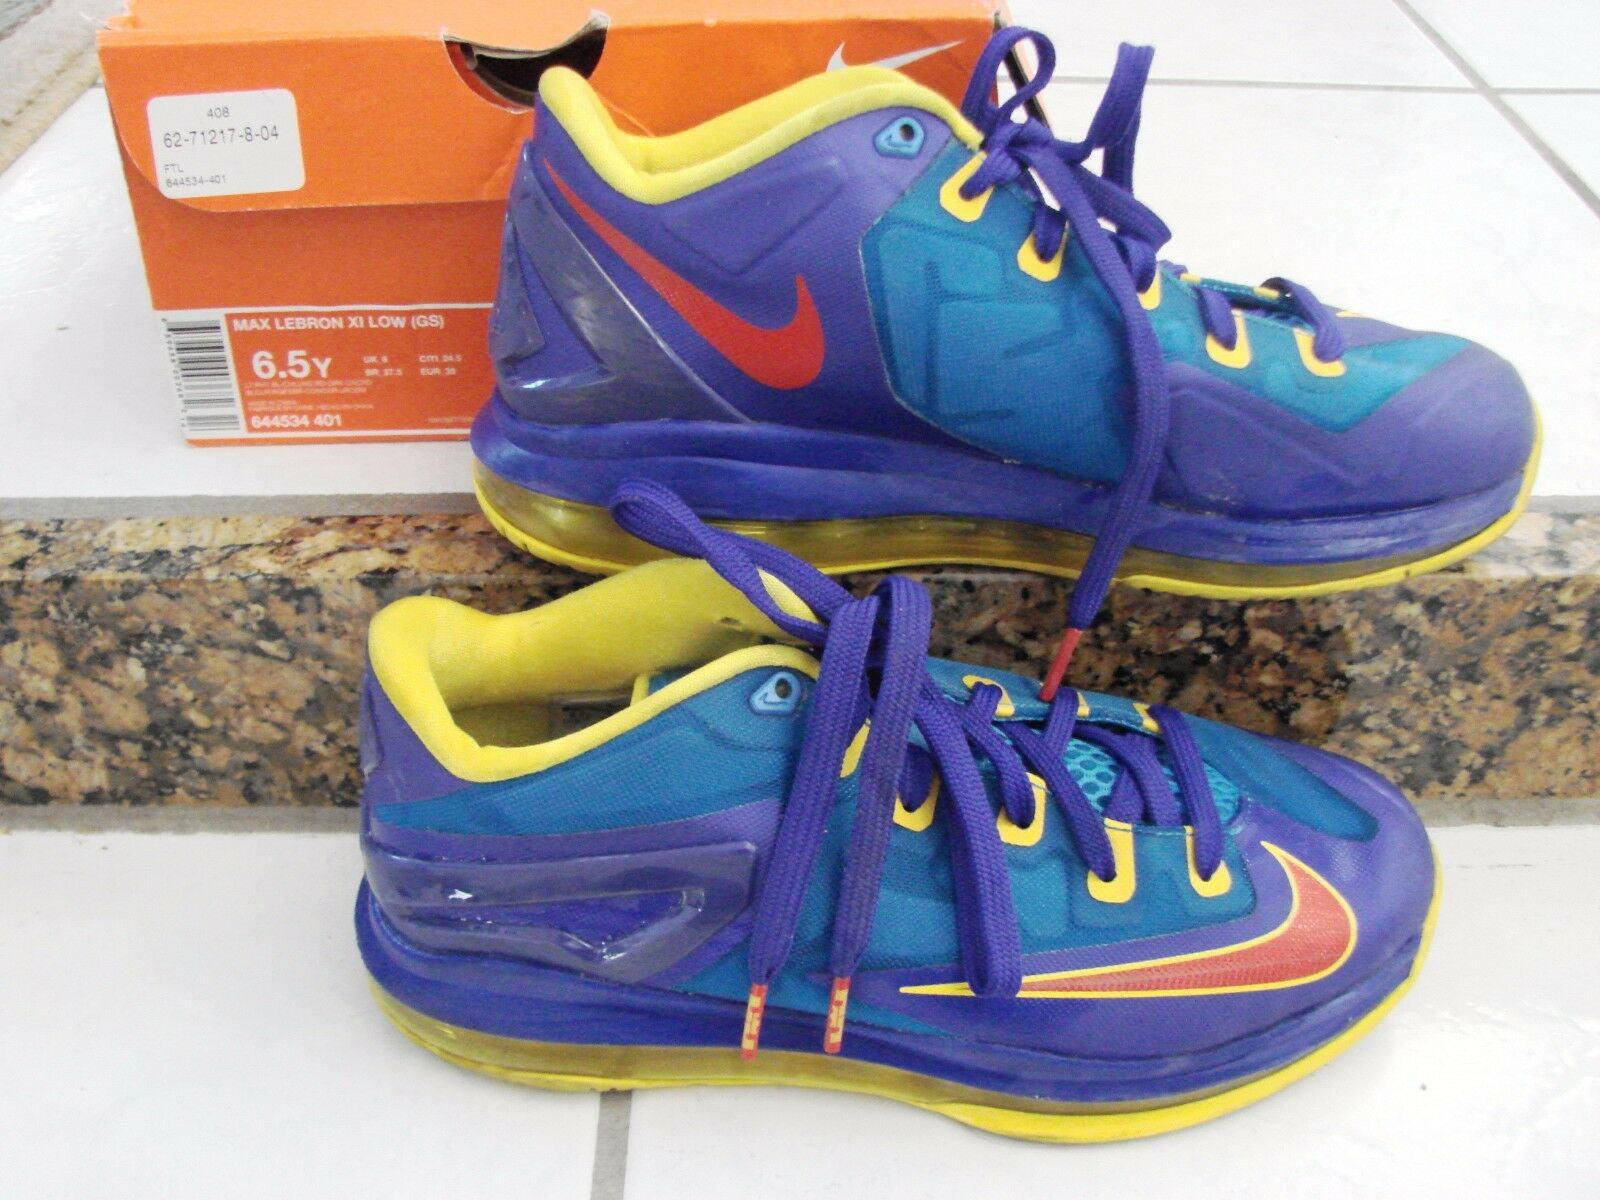 NIKE Max Lebron XI Low Price reduction  Comfortable Comfortable and good-looking